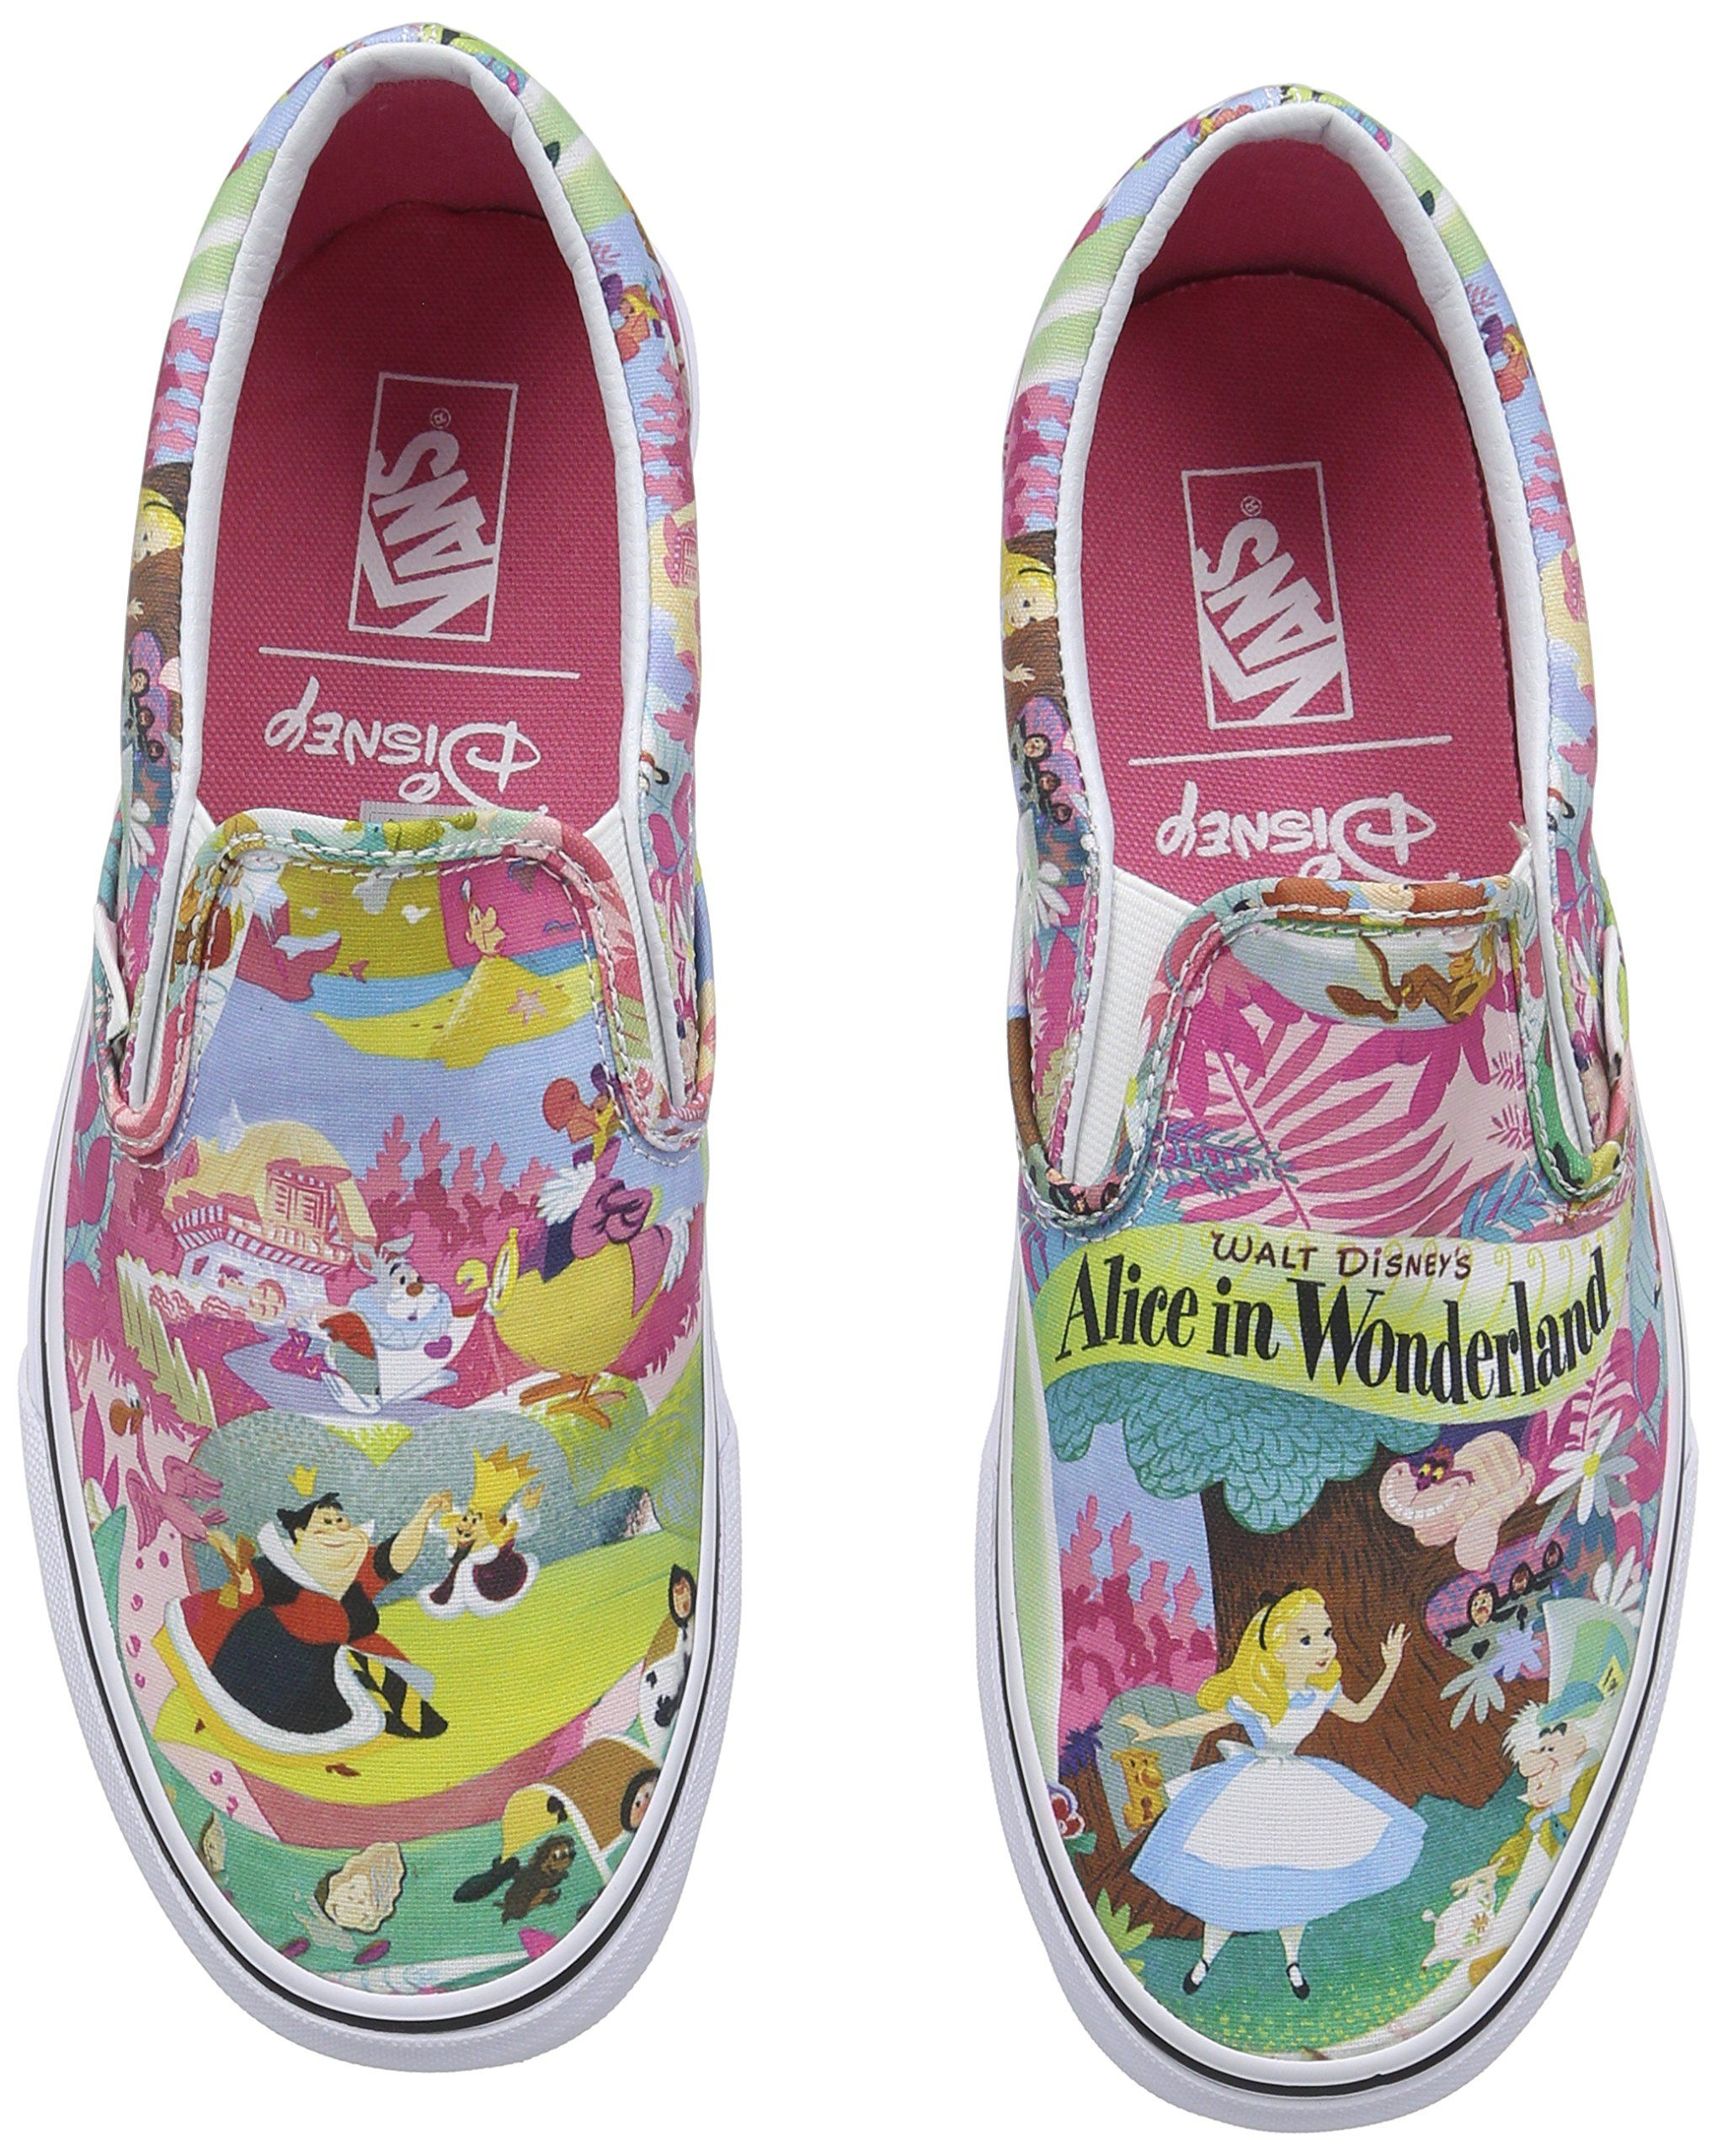 c52f18905f Vans (Disney) Shoes Alice in Wonderland Classic Slip On Pink Sneakers (4  Men  5.5 Women)